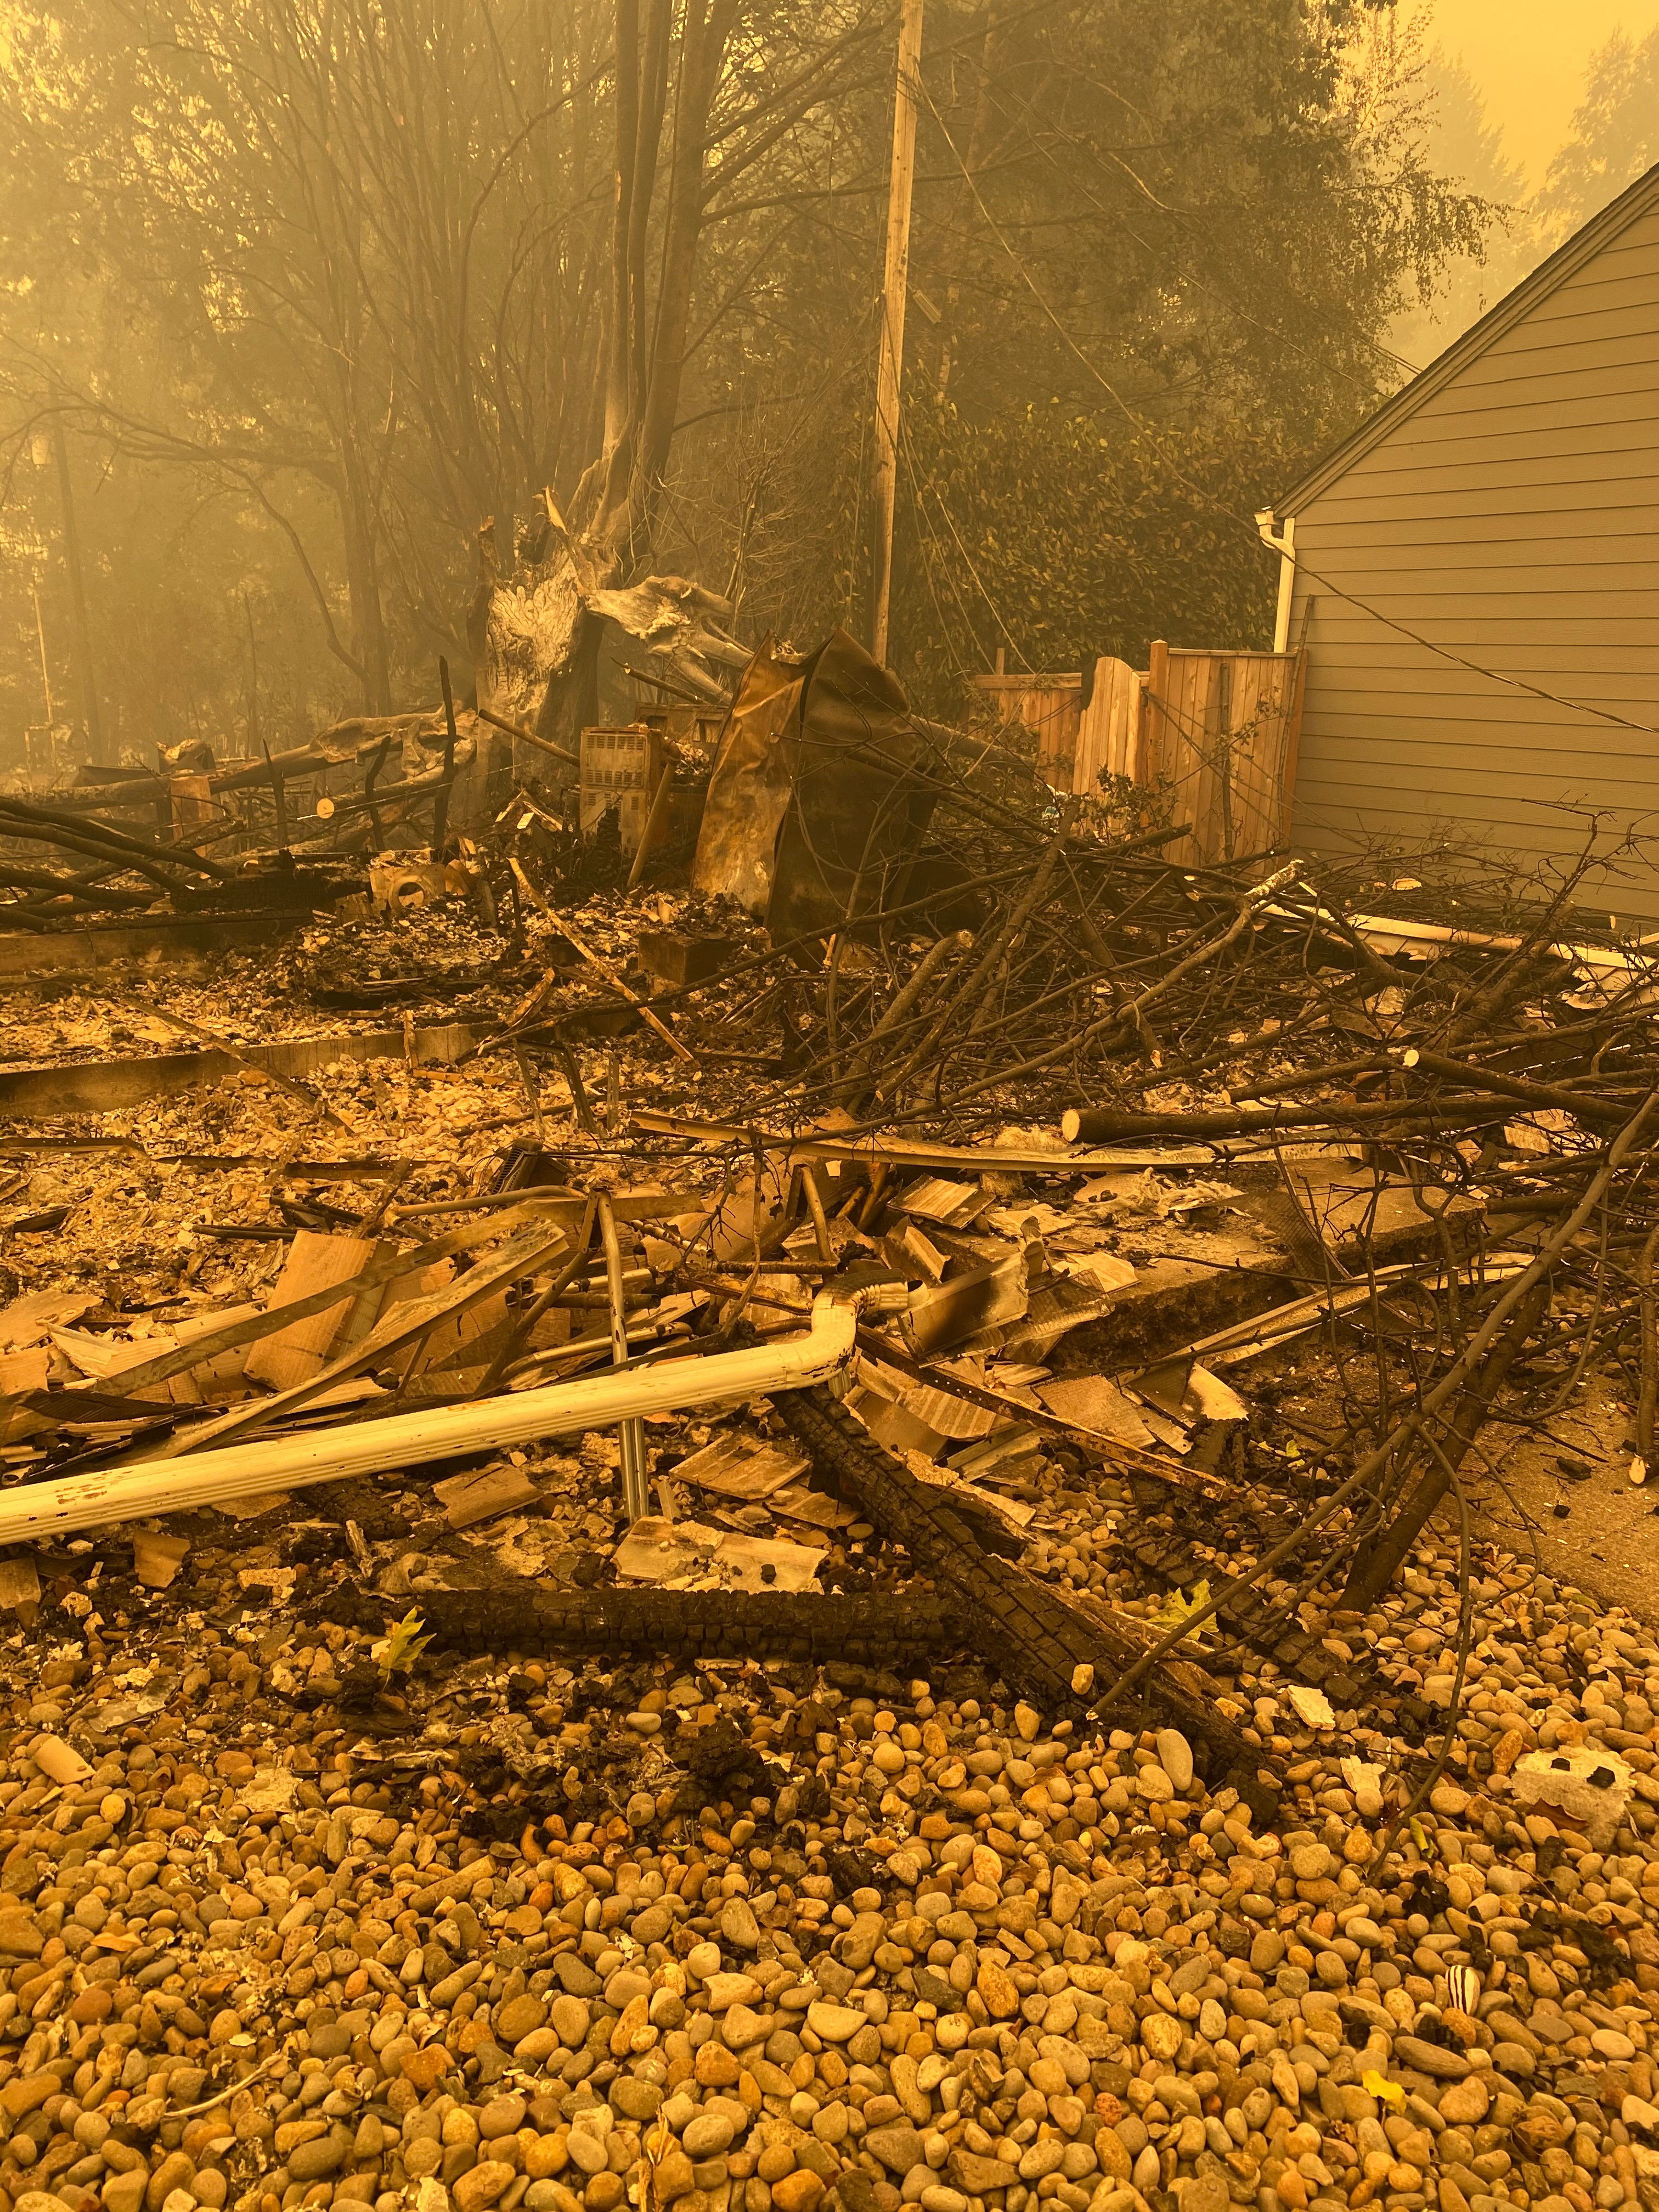 The Beachie Creek Fire destroyed the Johnson's Mill City home. (Photo: Lori Johnson)